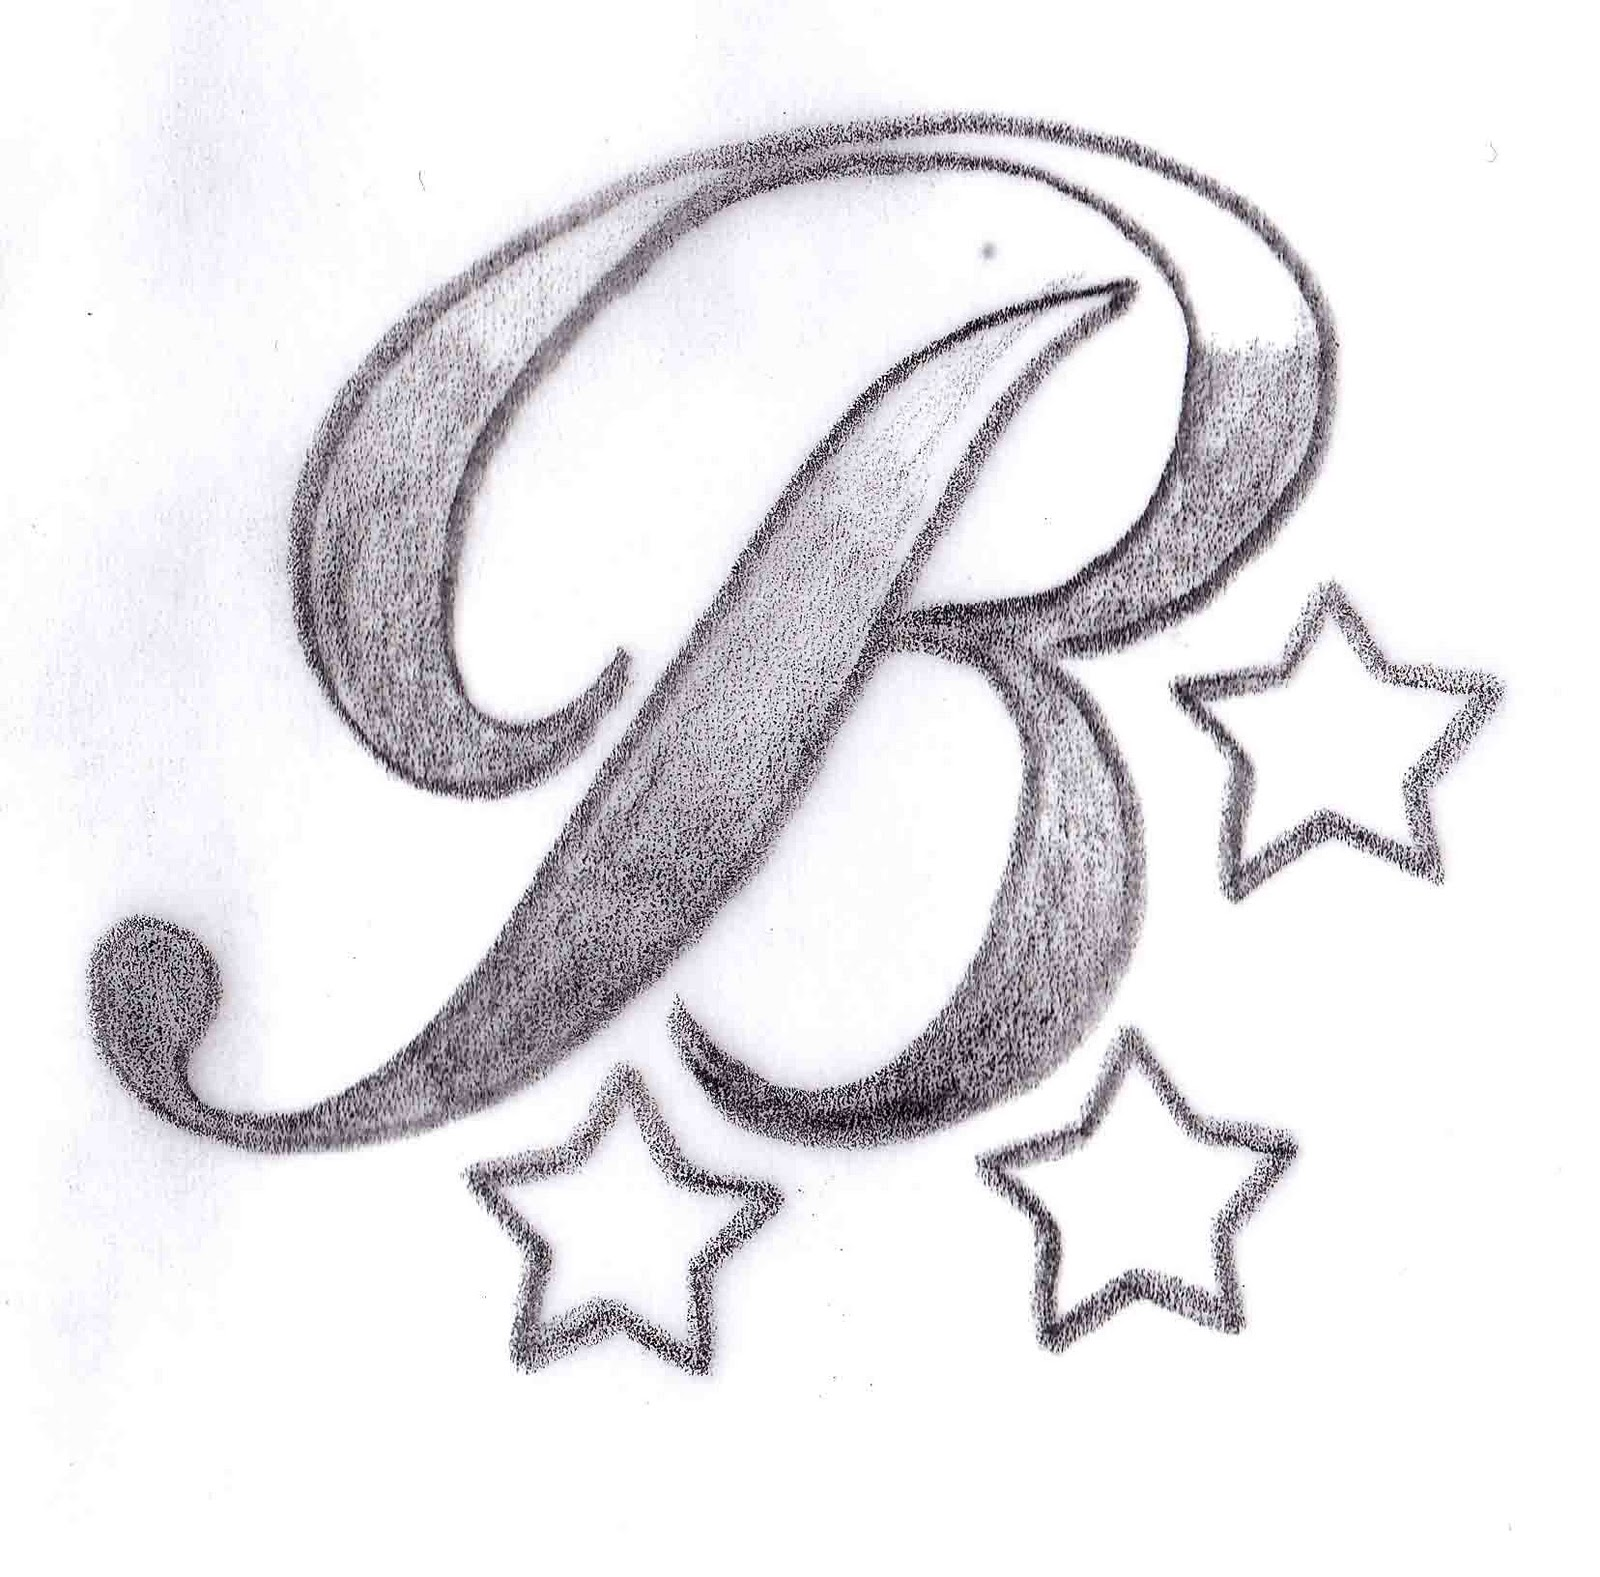 Tattoo Designs Of Letter A: 1000+ Ideas About Letter B Tattoo On Pinterest